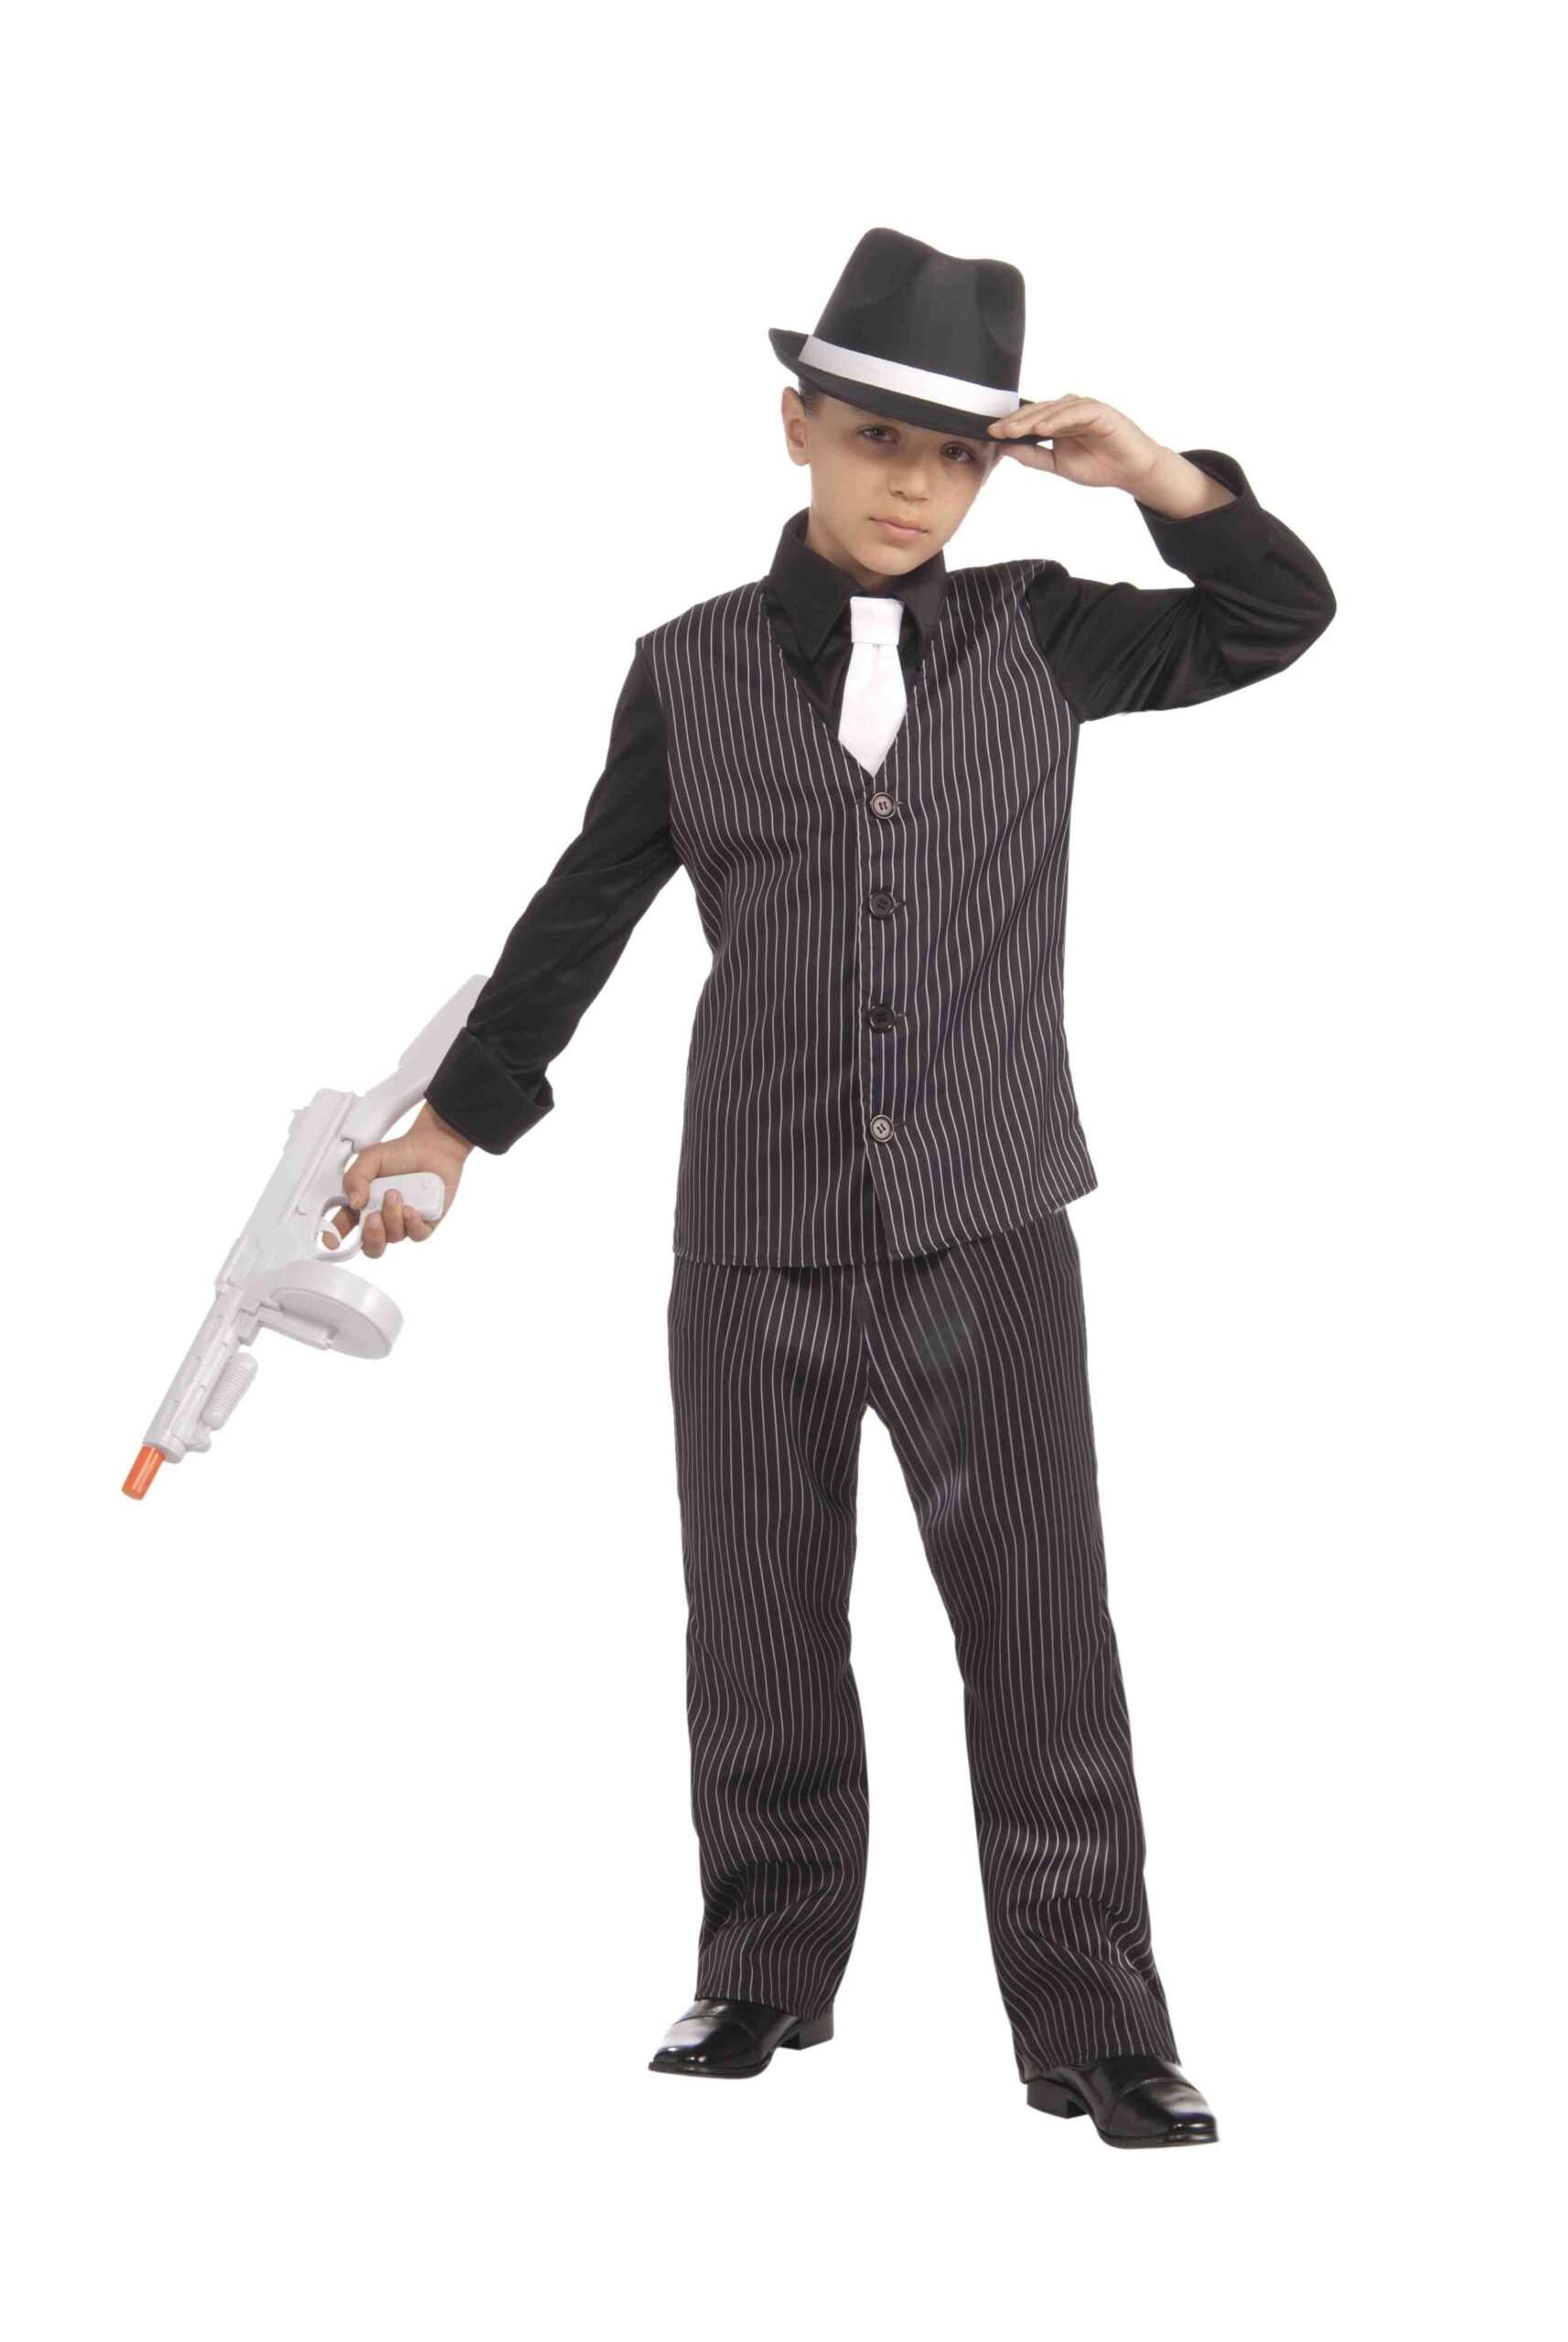 little boy in pinstripped suit with hat and tommy gun